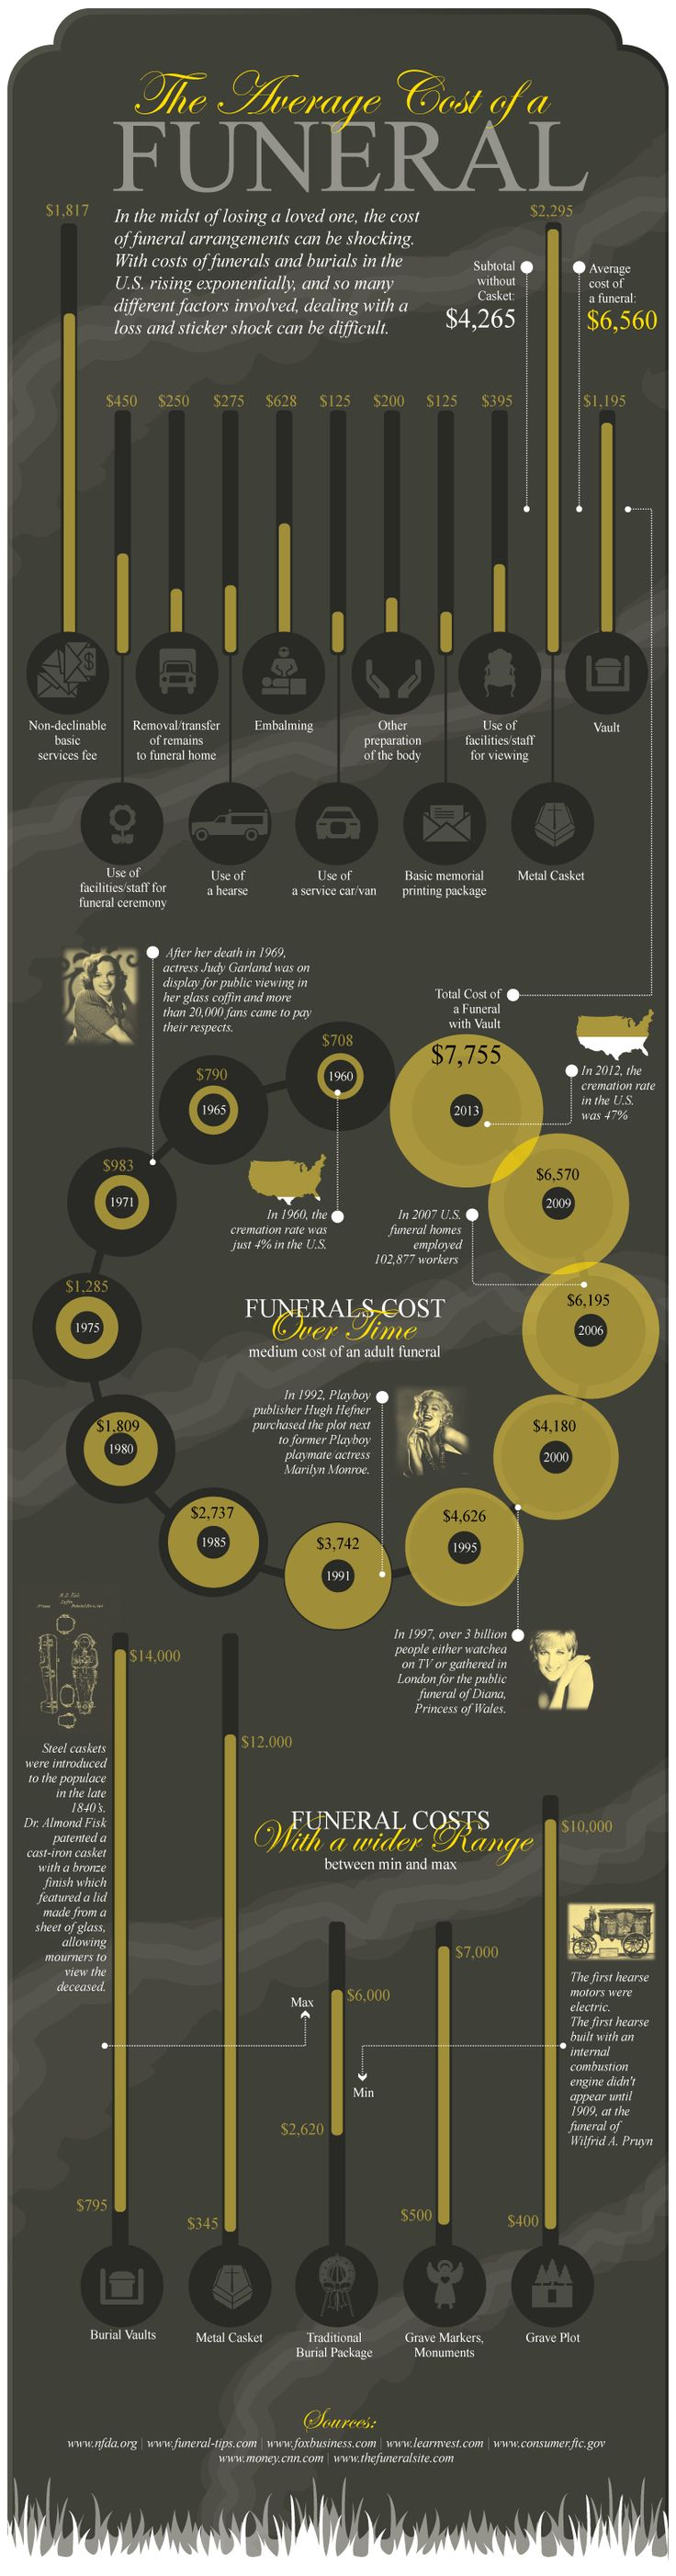 Infographic - The average cost of a Funeral